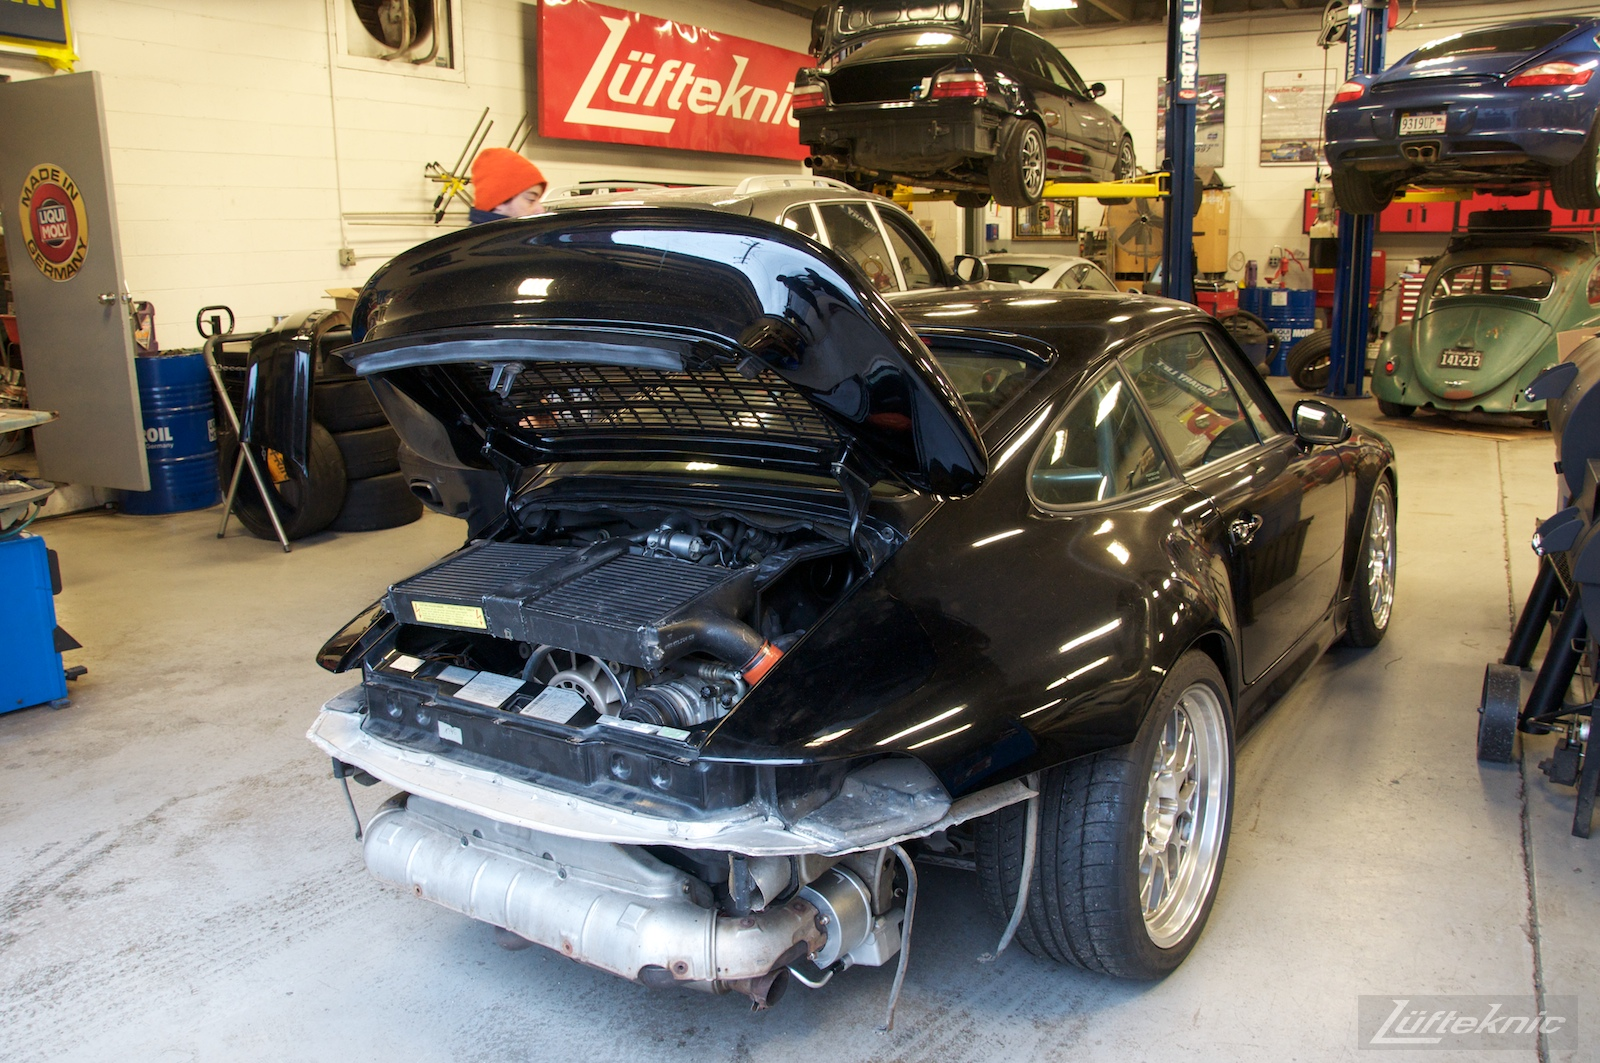 993 Turbo with no rear bumper sitting staged inside the Lufteknic shop with other cars inside the shop.